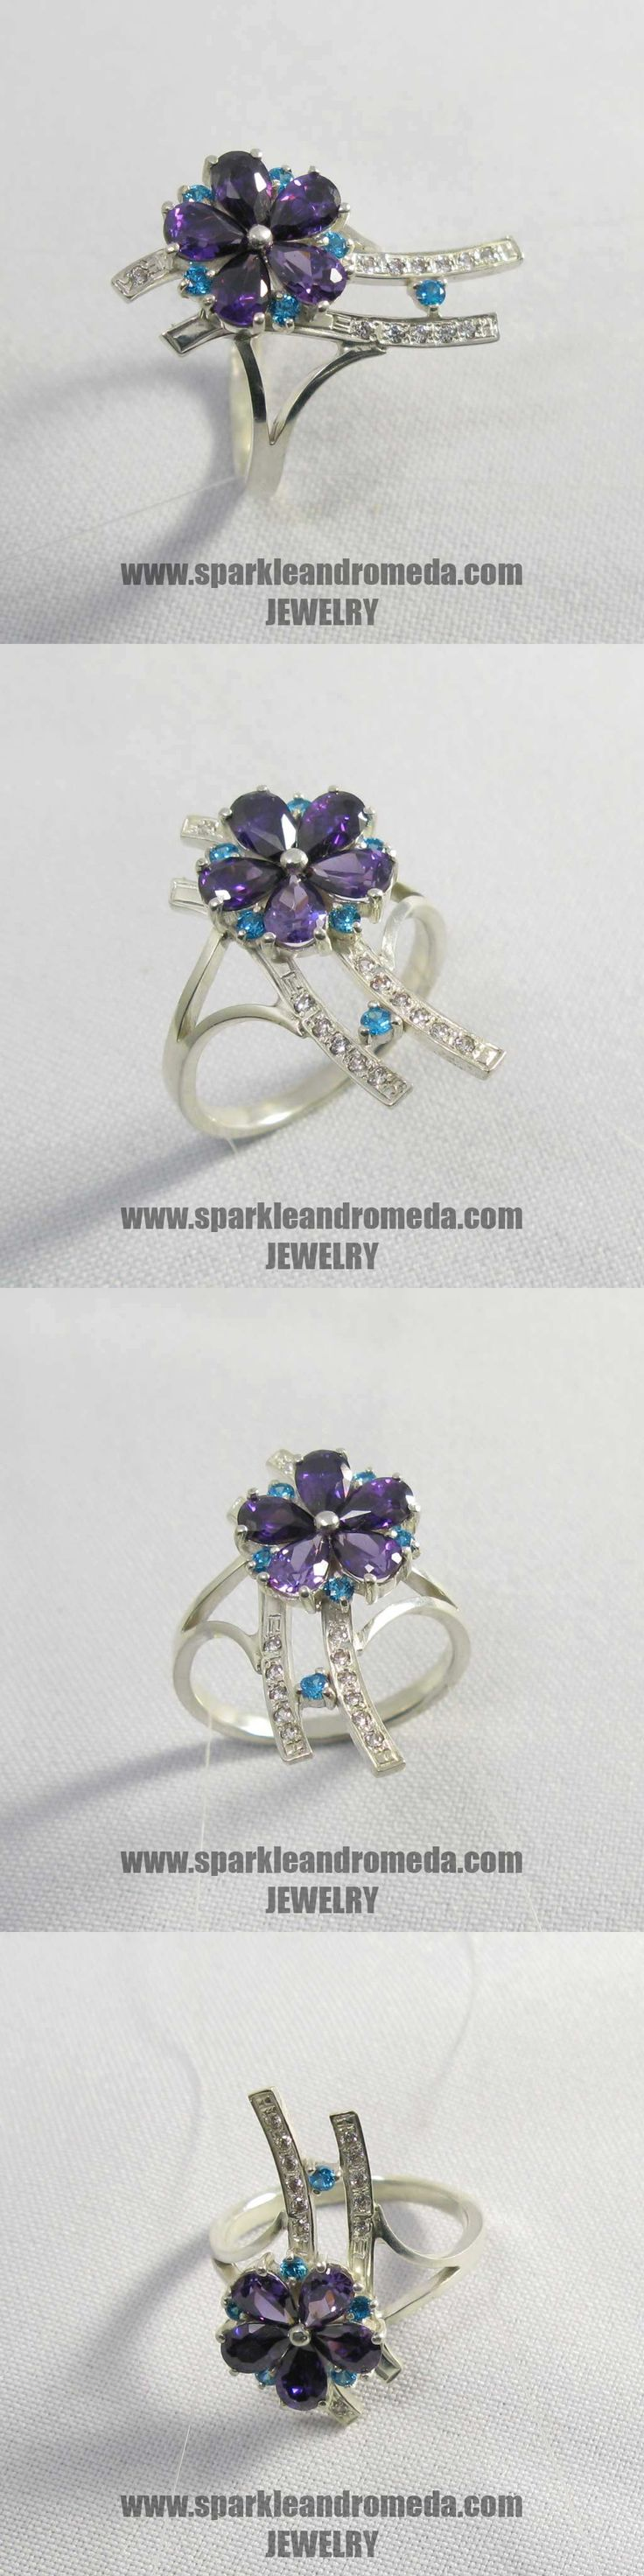 Sterling 925 silver ring with 5 pear 6×4 mm violet amethyst color 6 round 2 mm blue zircon color and 12 round 1,25 mm white color cubic zirconia gemstones.